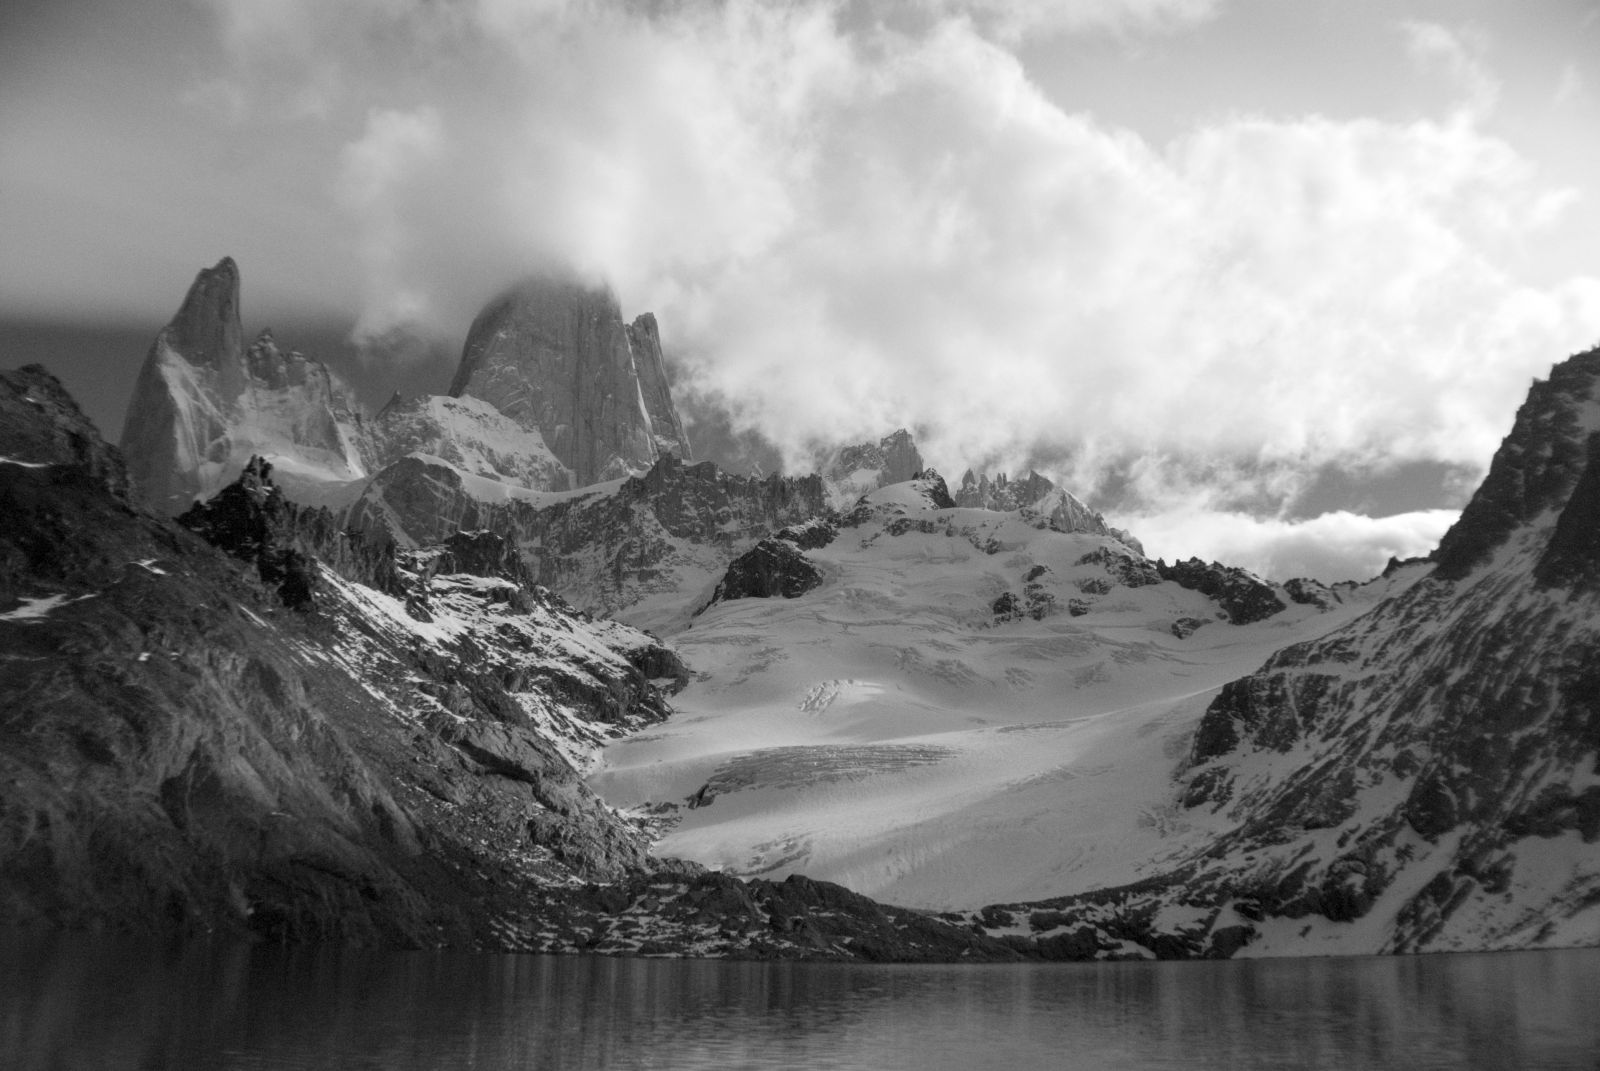 essay on ansel adams photography